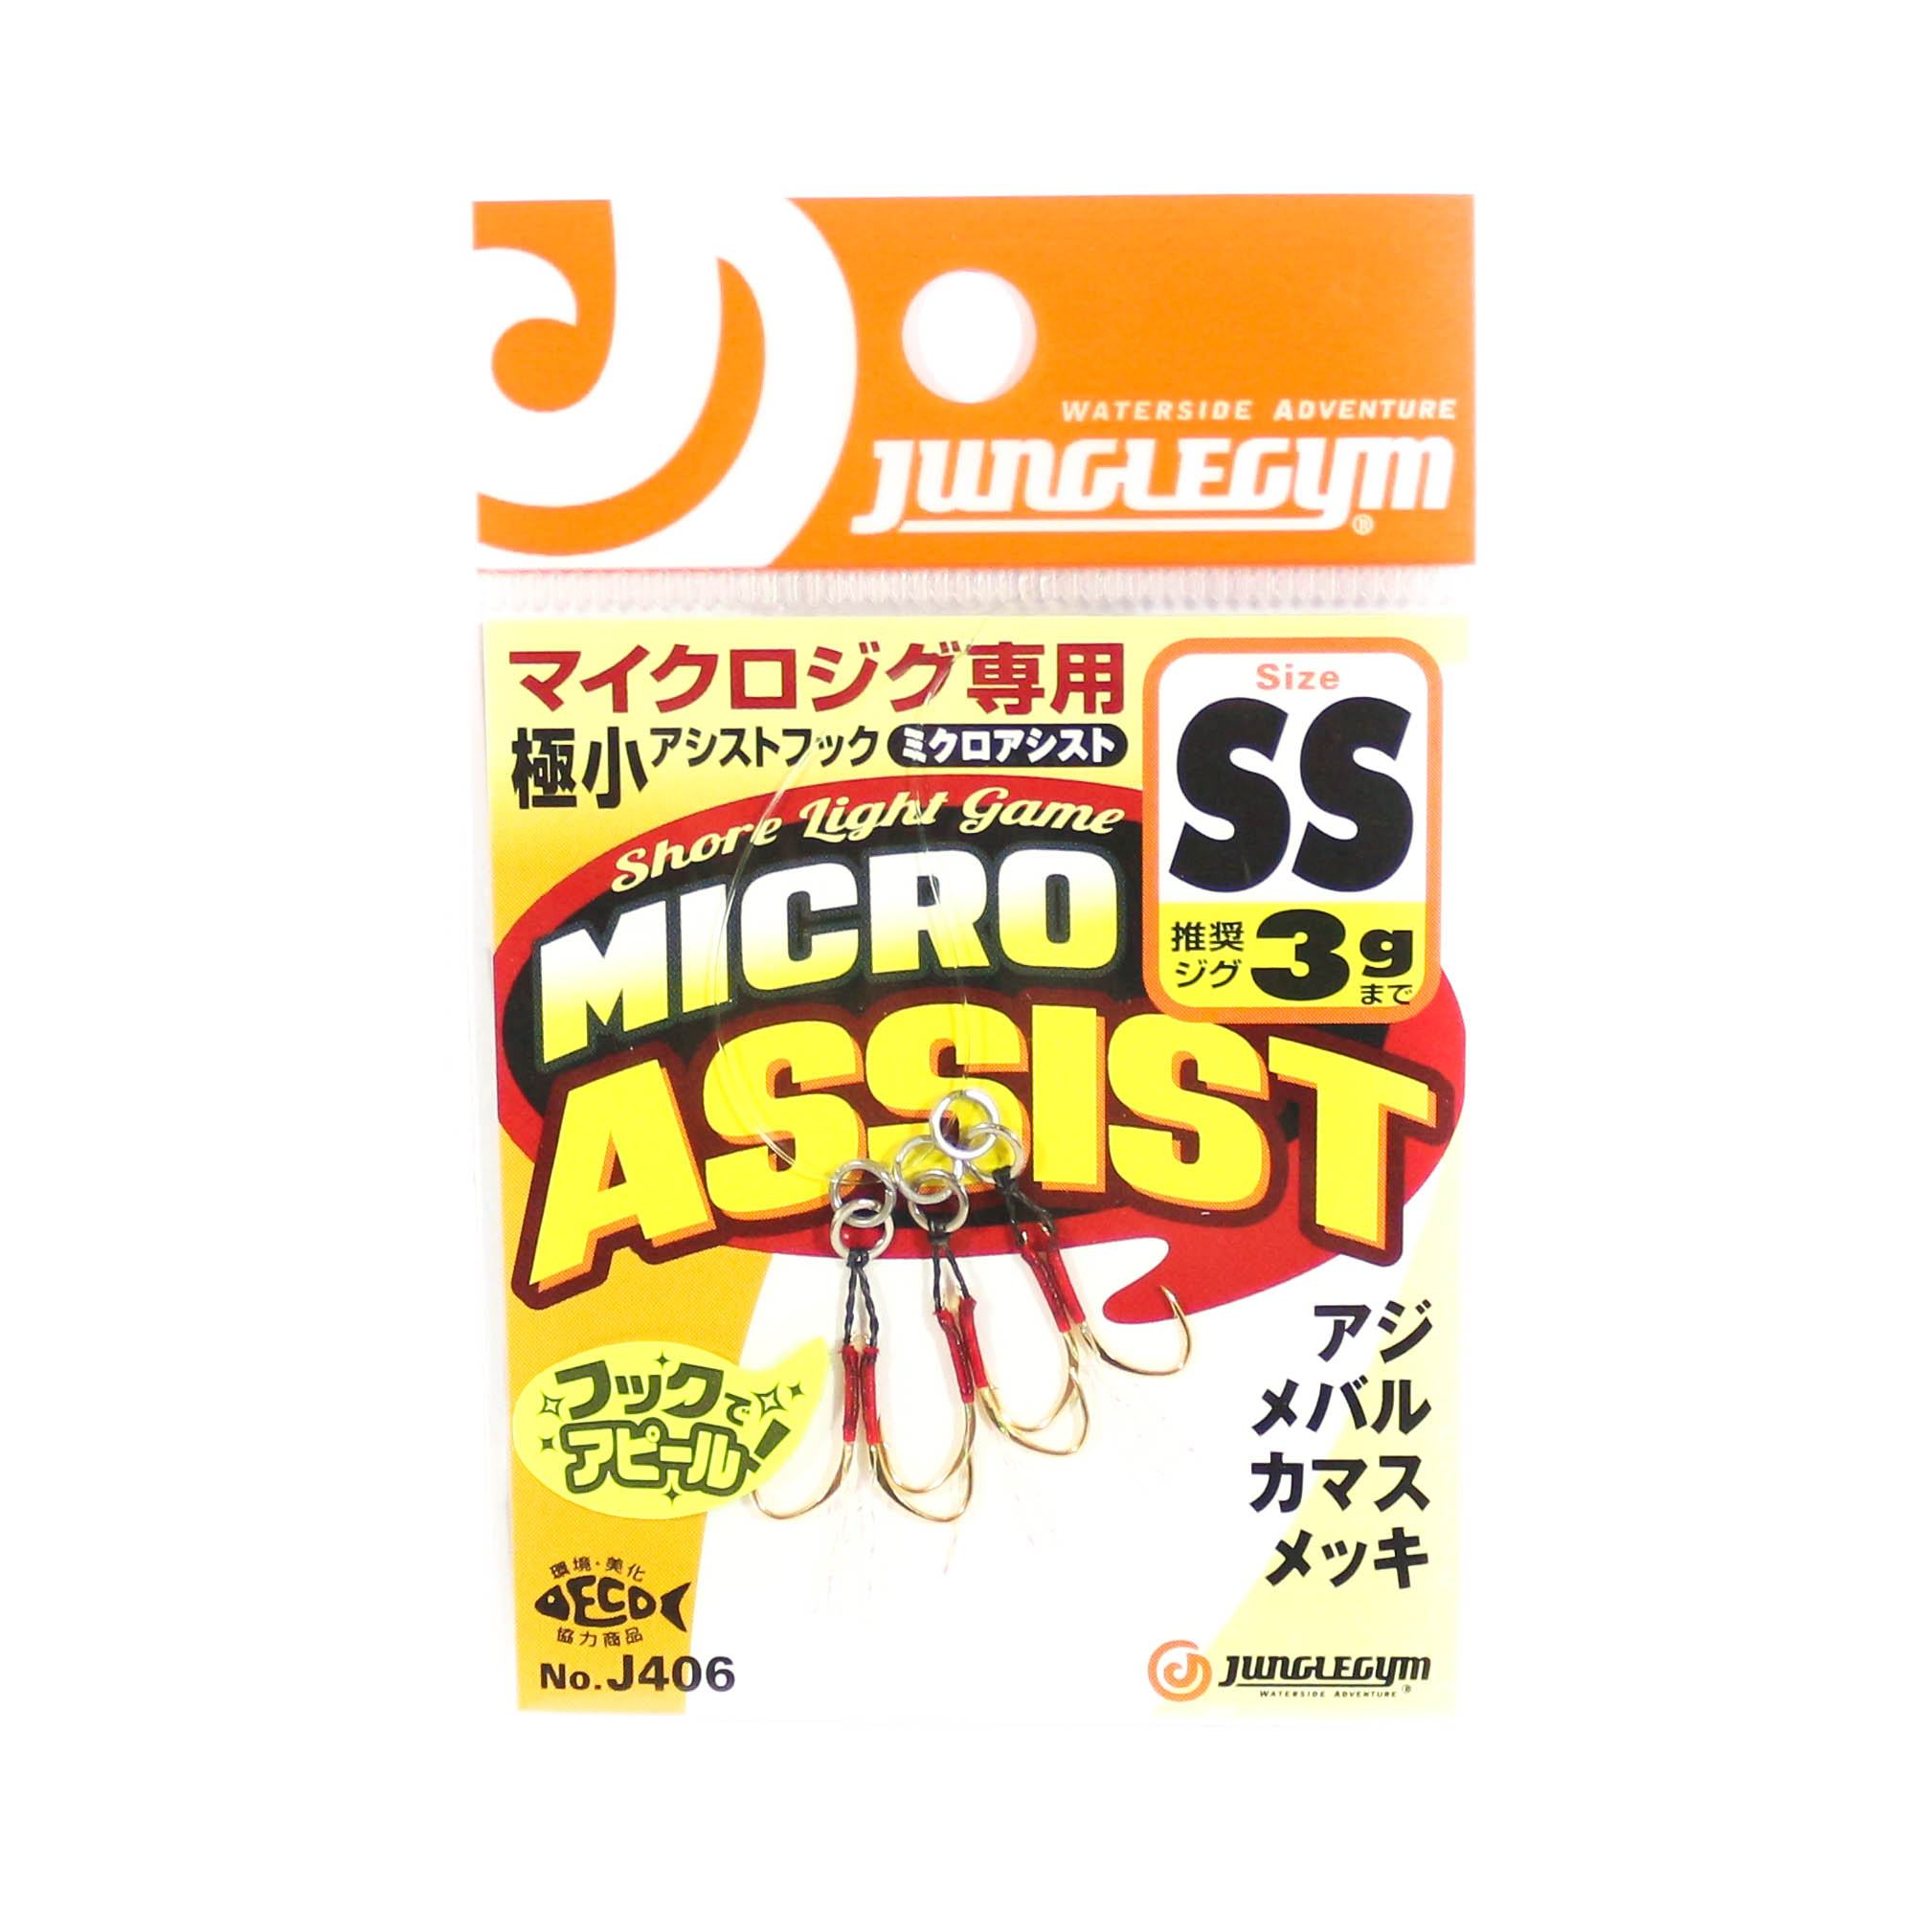 Jungle Gym J406 Micro Assist Light Game Mini Assist Hooks Size SS (6739)